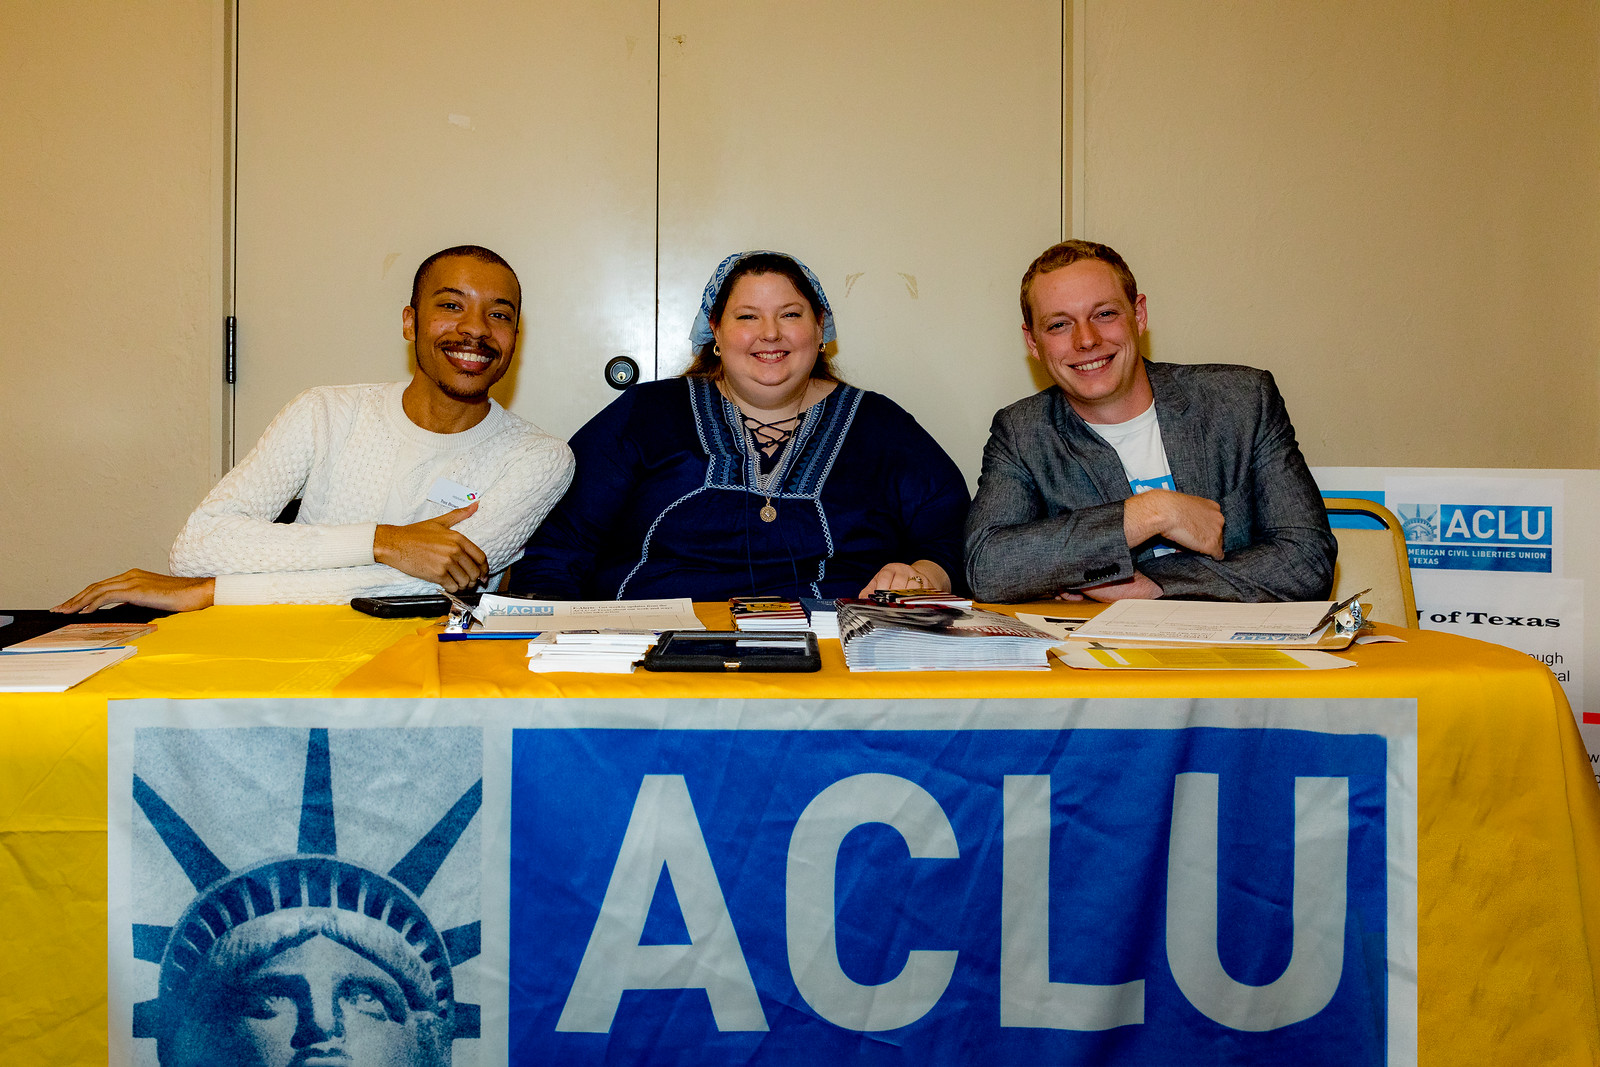 ACLU table.jpg